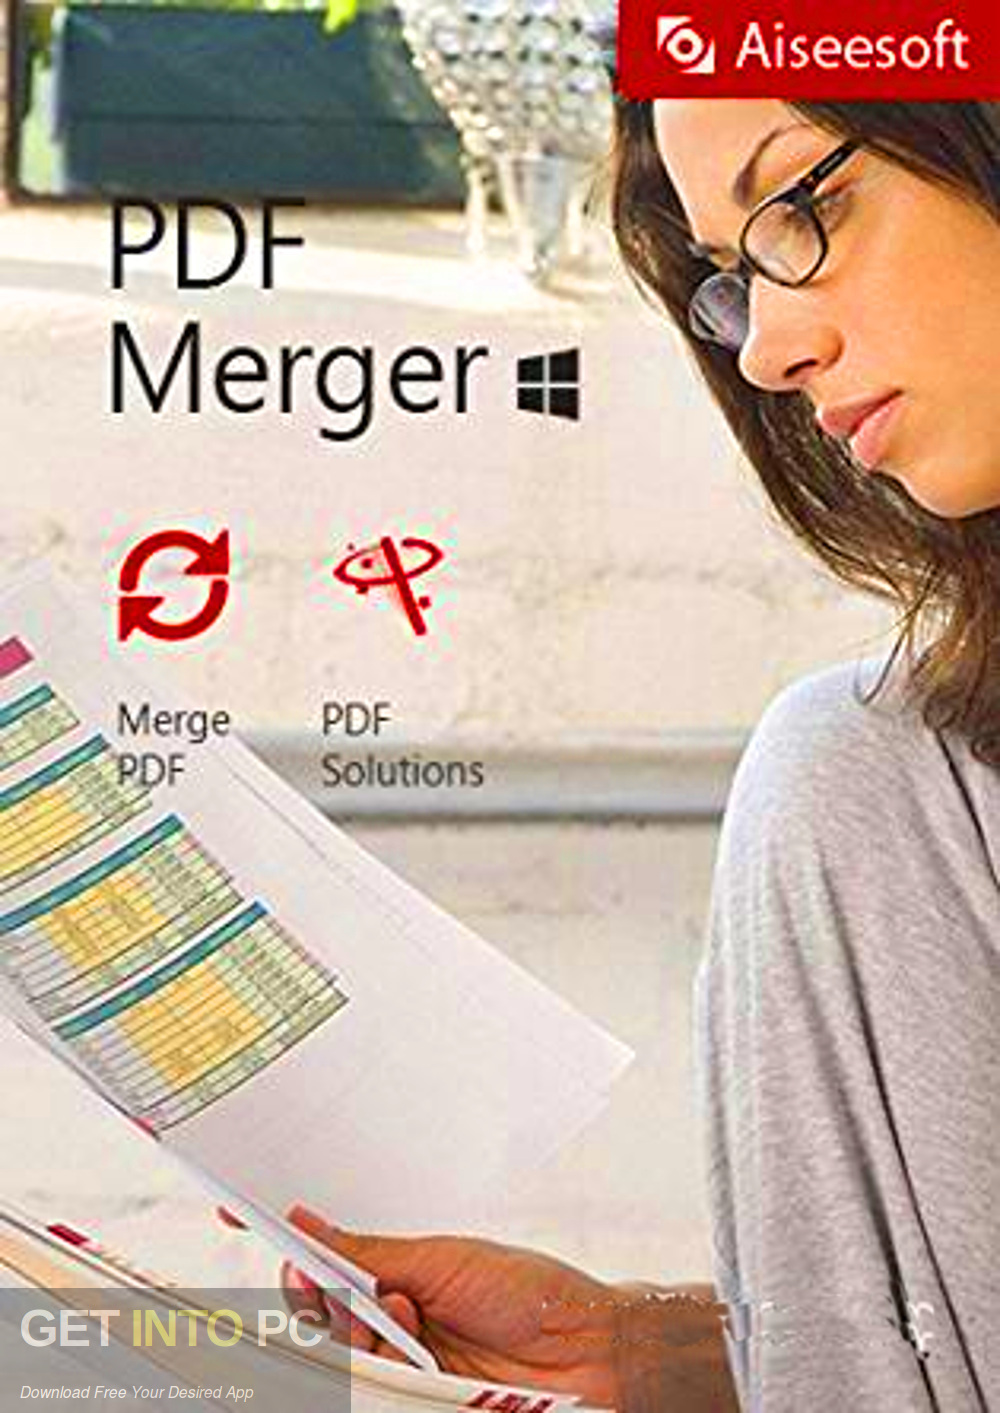 Aiseesoft PDF Merger Free Download-GetintoPC.com